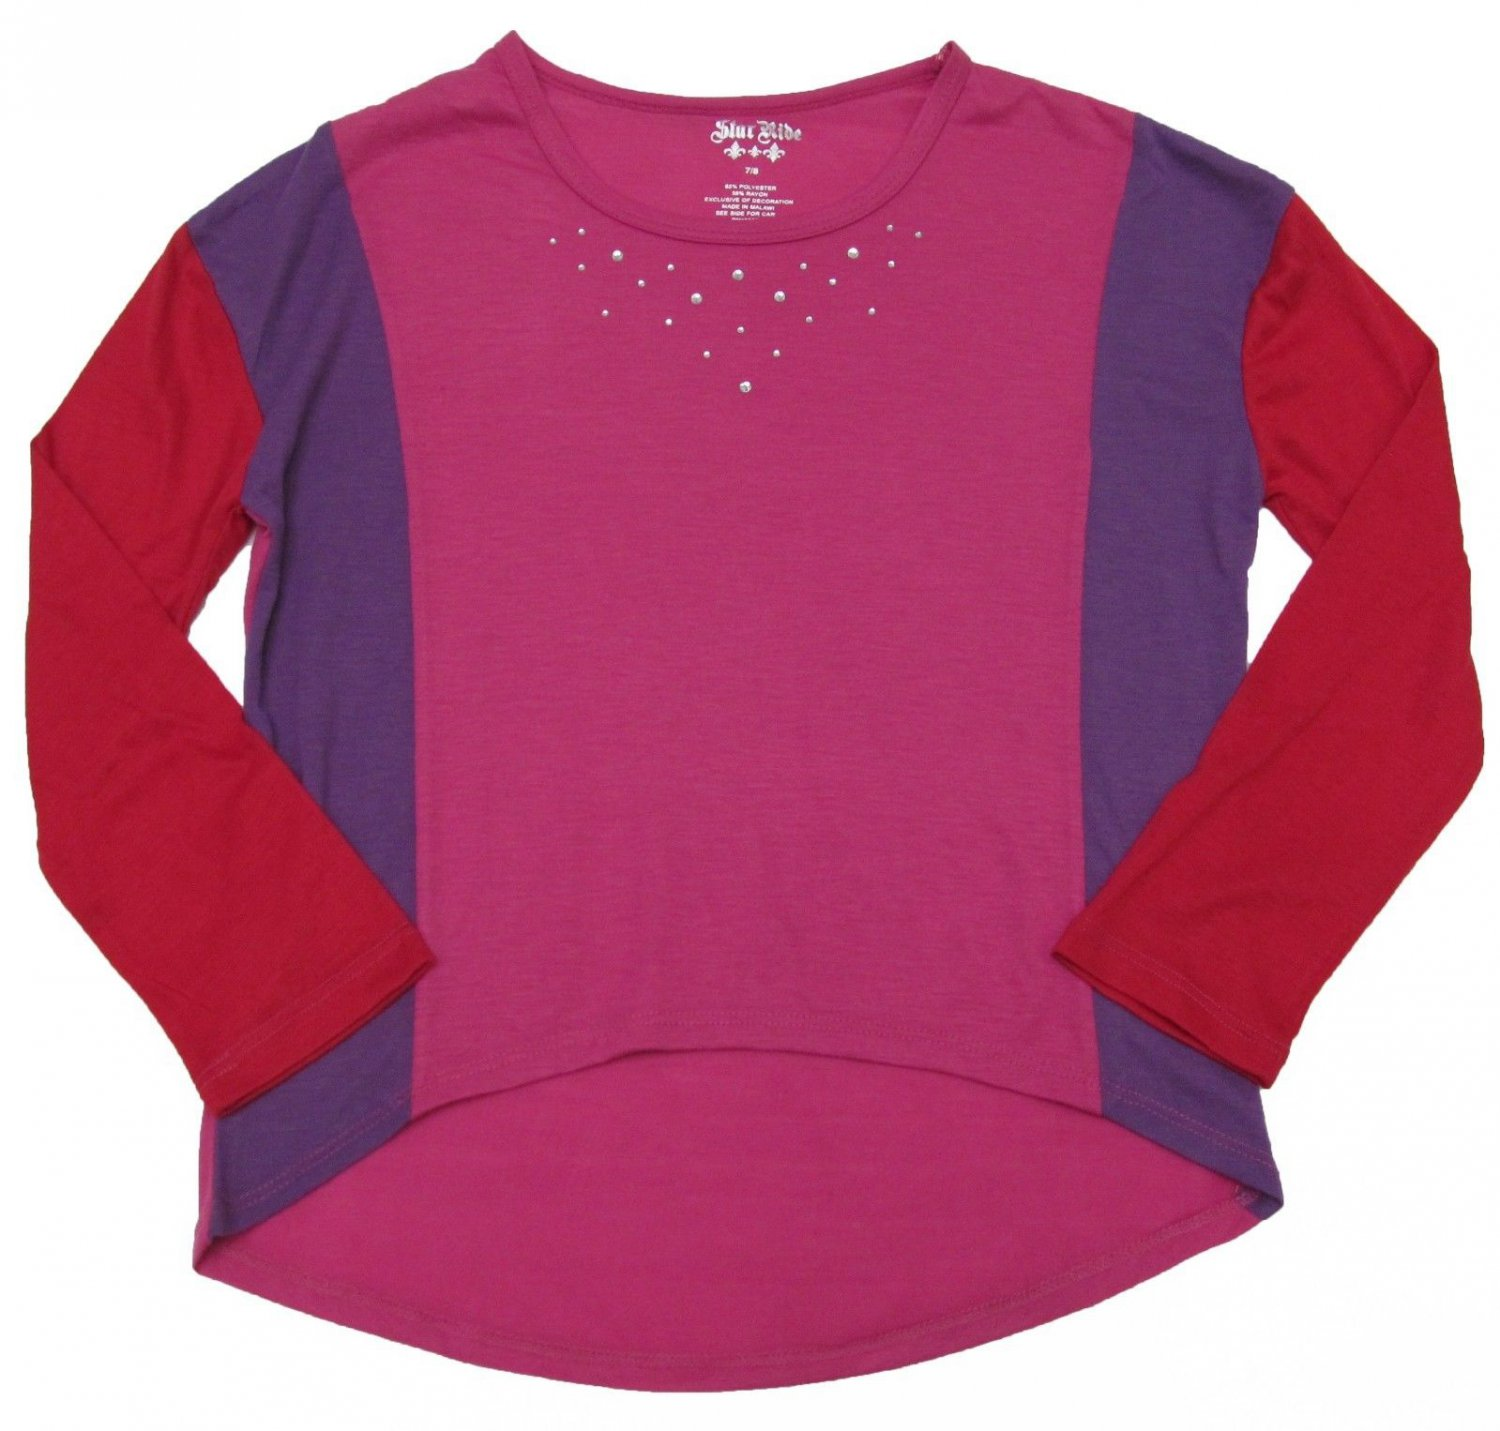 Star Ride Girls size 7-8 Pink and Purple High-Low Long Sleeve Shirt